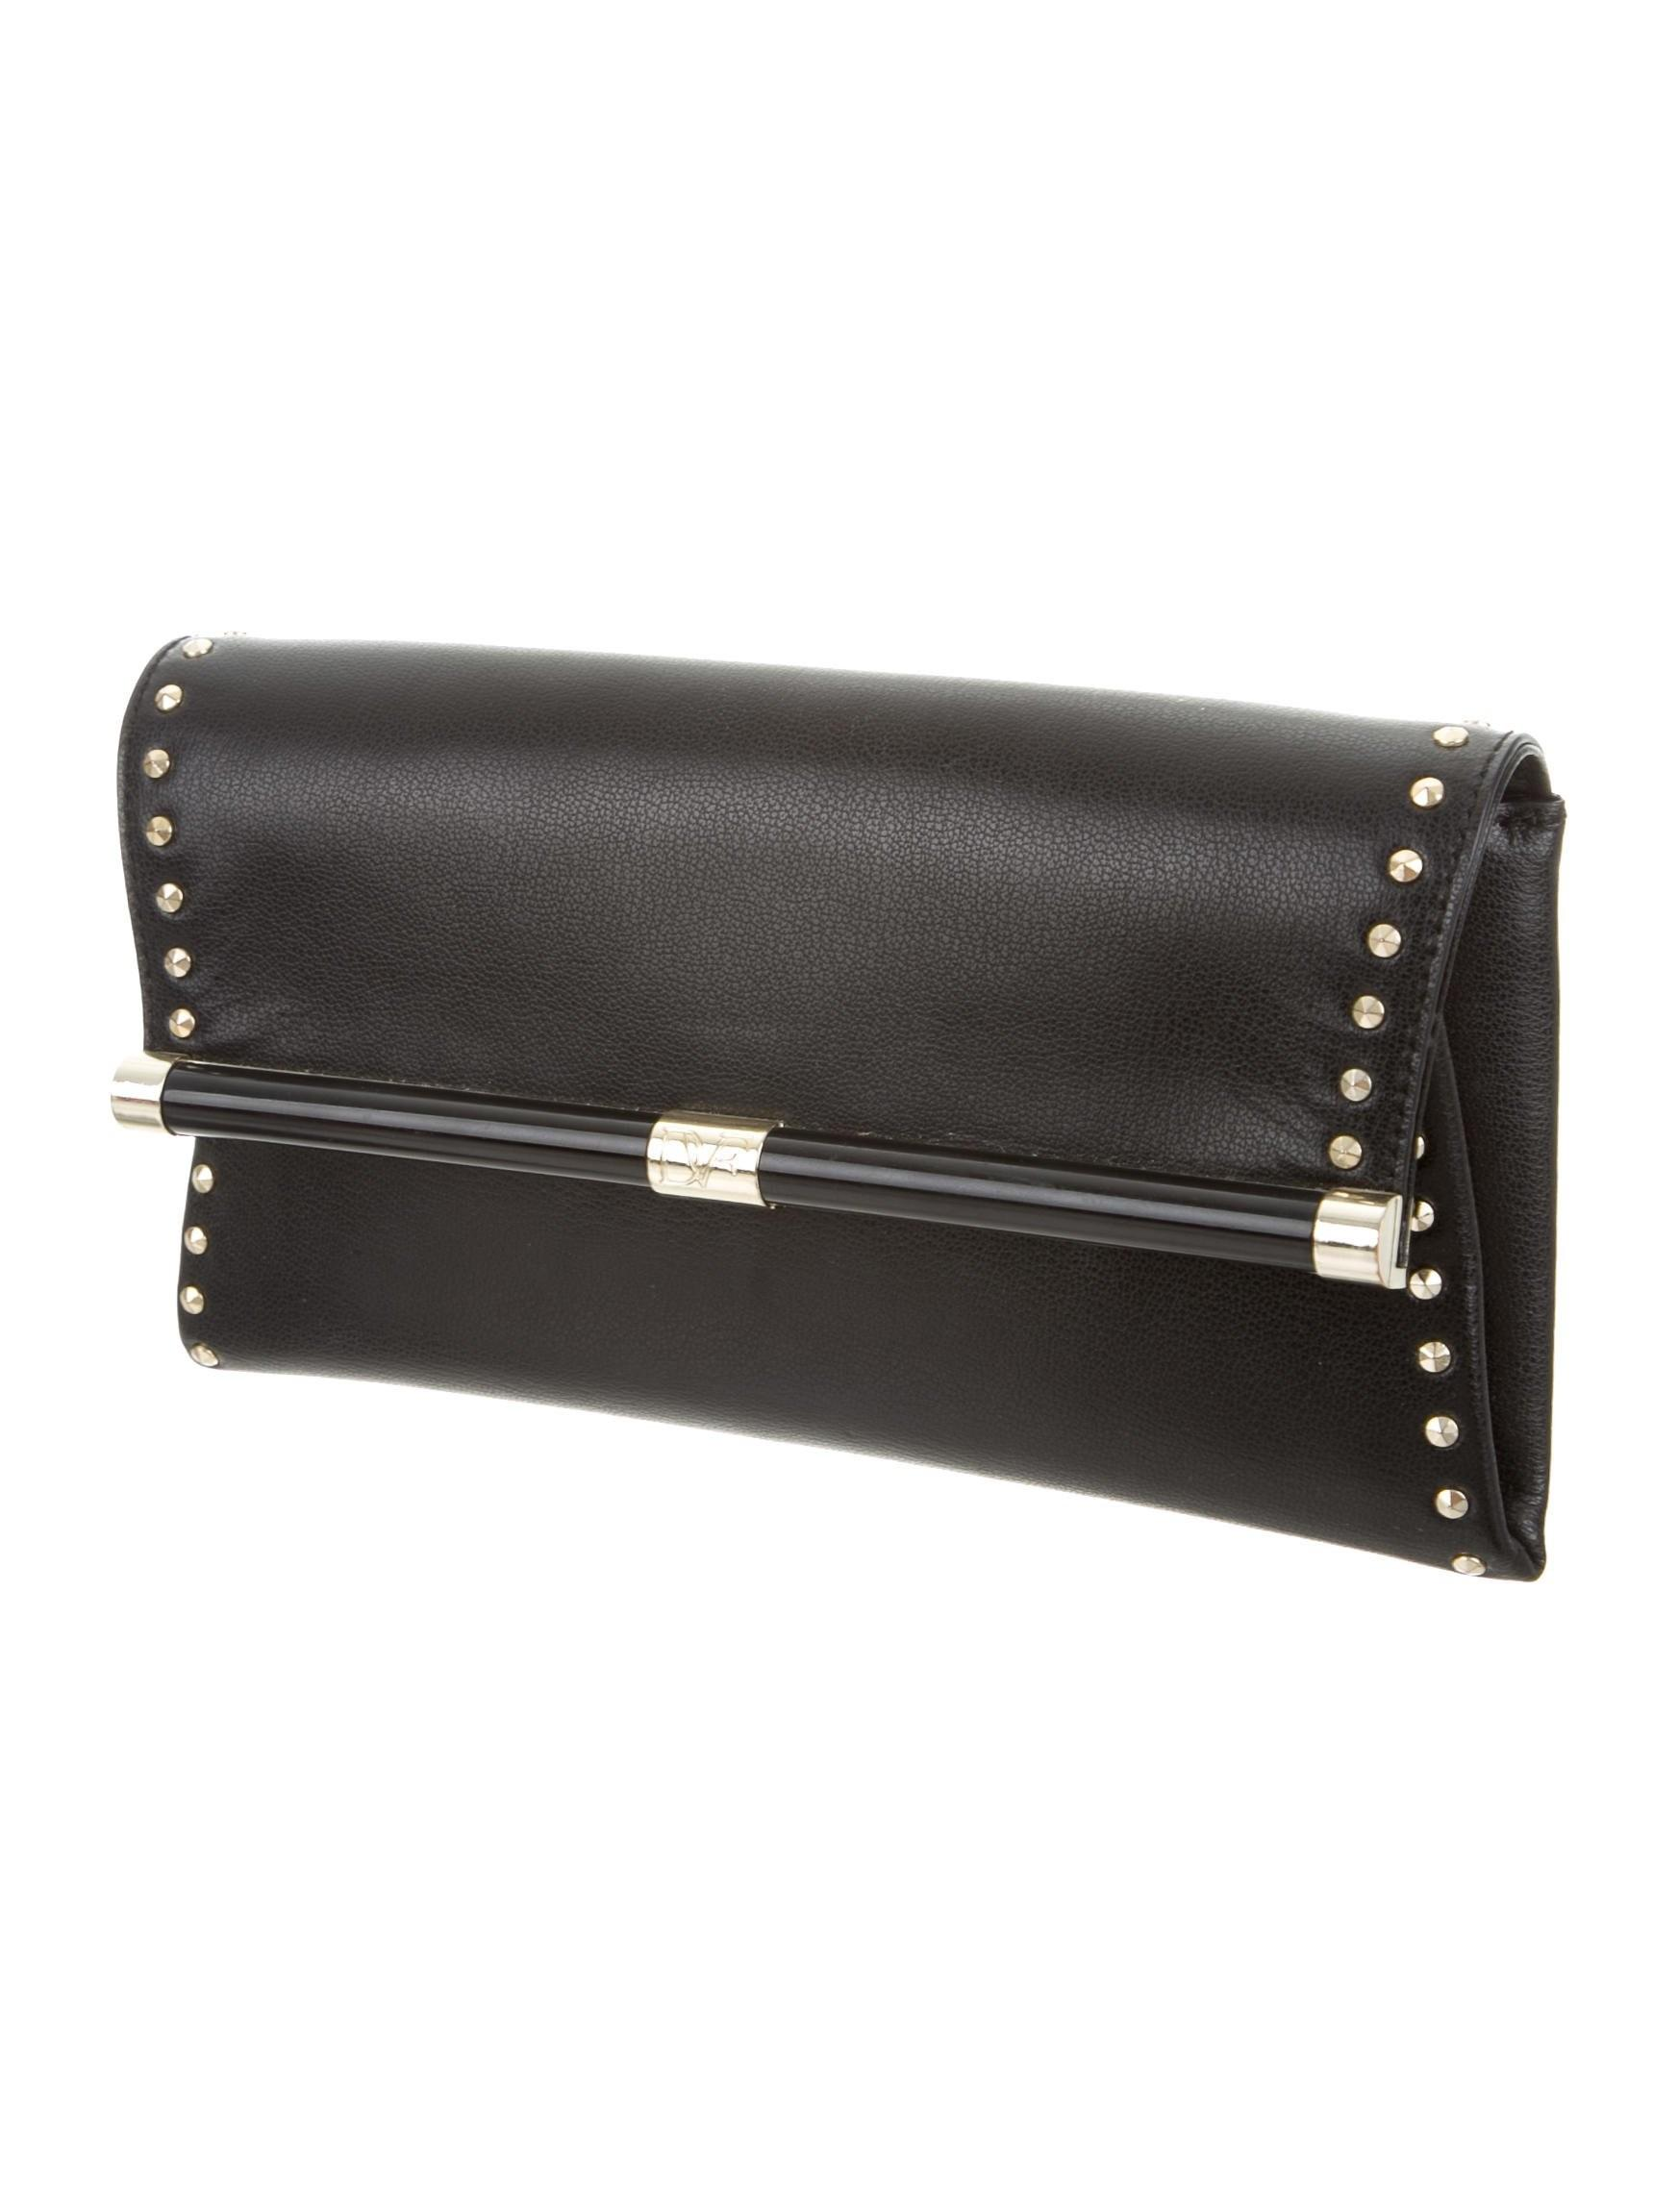 Diane Von Furstenberg Leather Flap Clutch Handbags